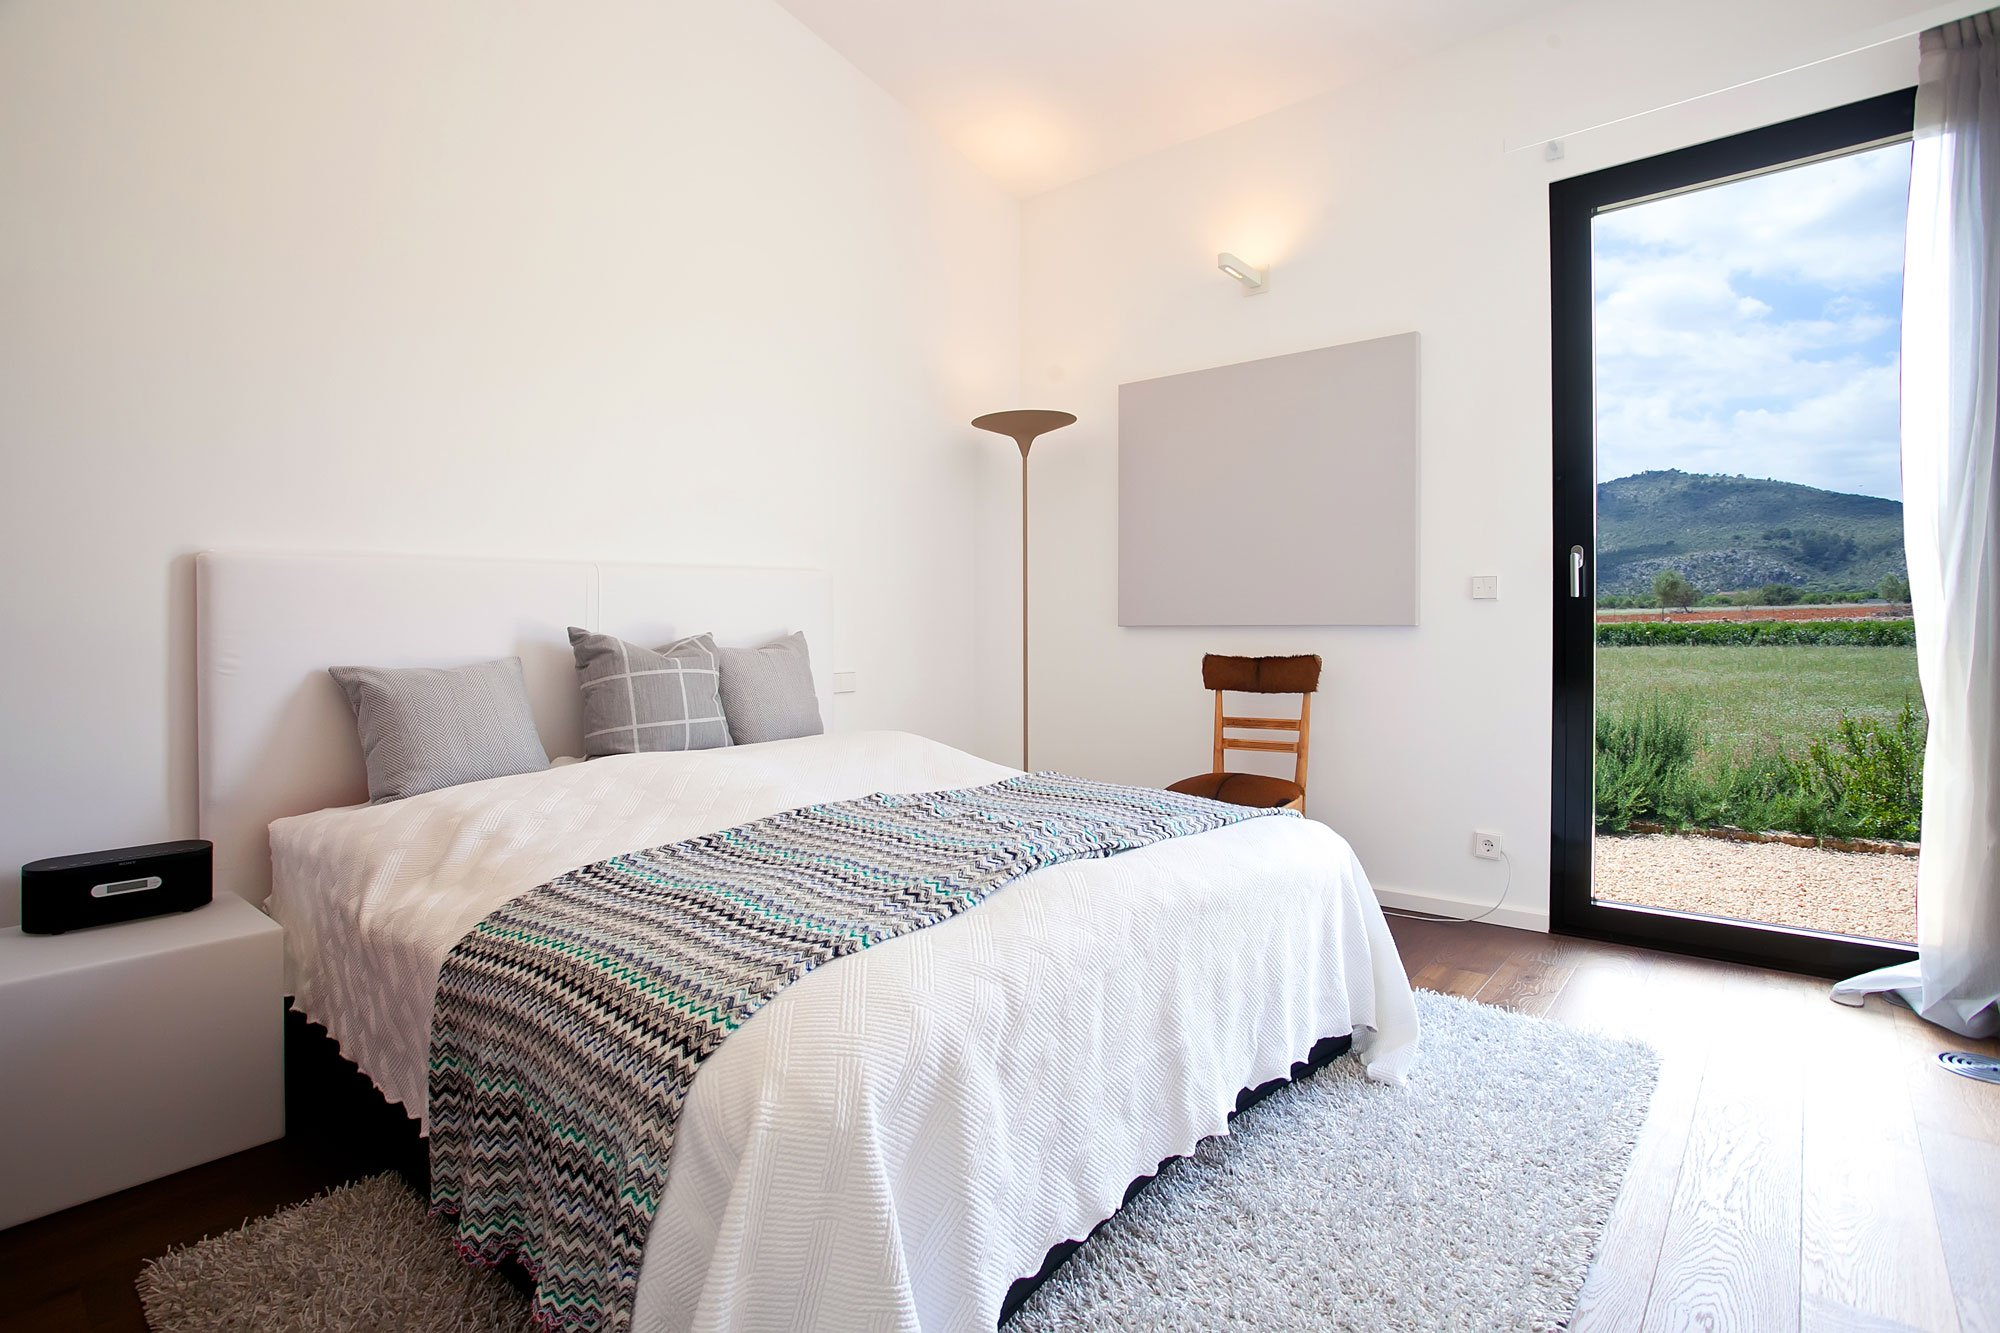 A-Holiday-Home-in-Mallorca-19